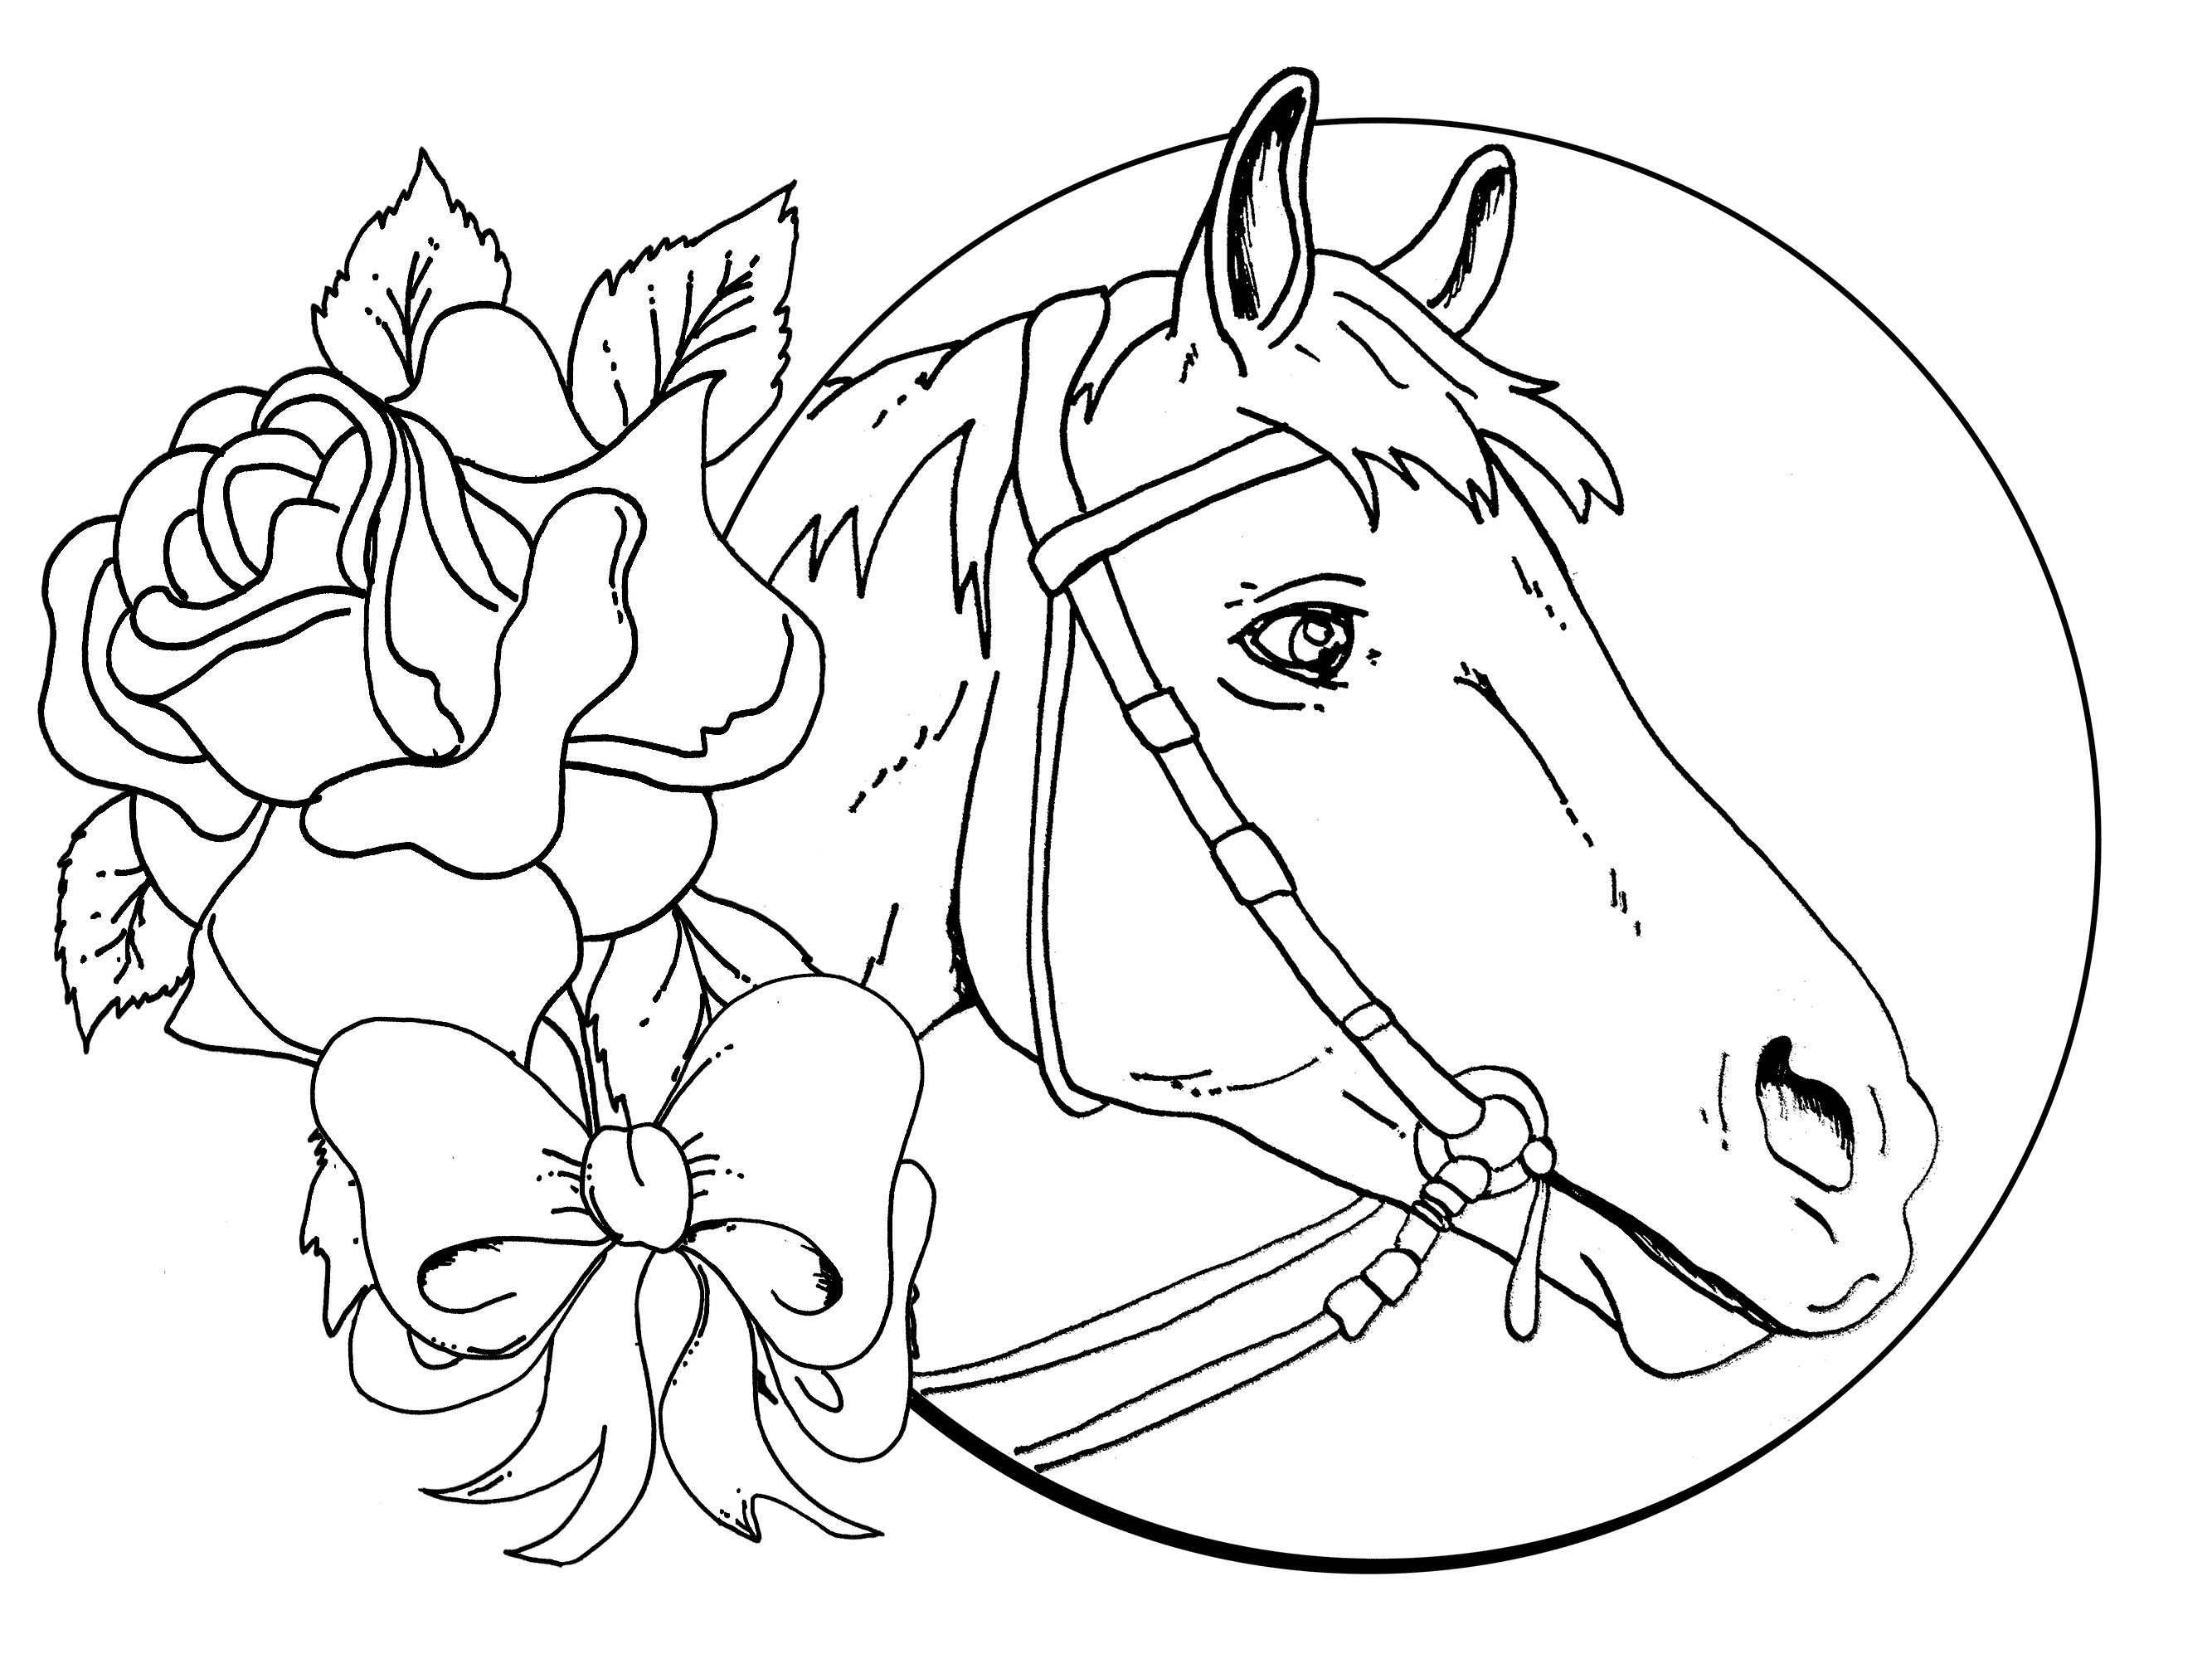 Coloring Book Pages Girls  Girl Coloring Pages Cartoon Coloring Pages For Girls